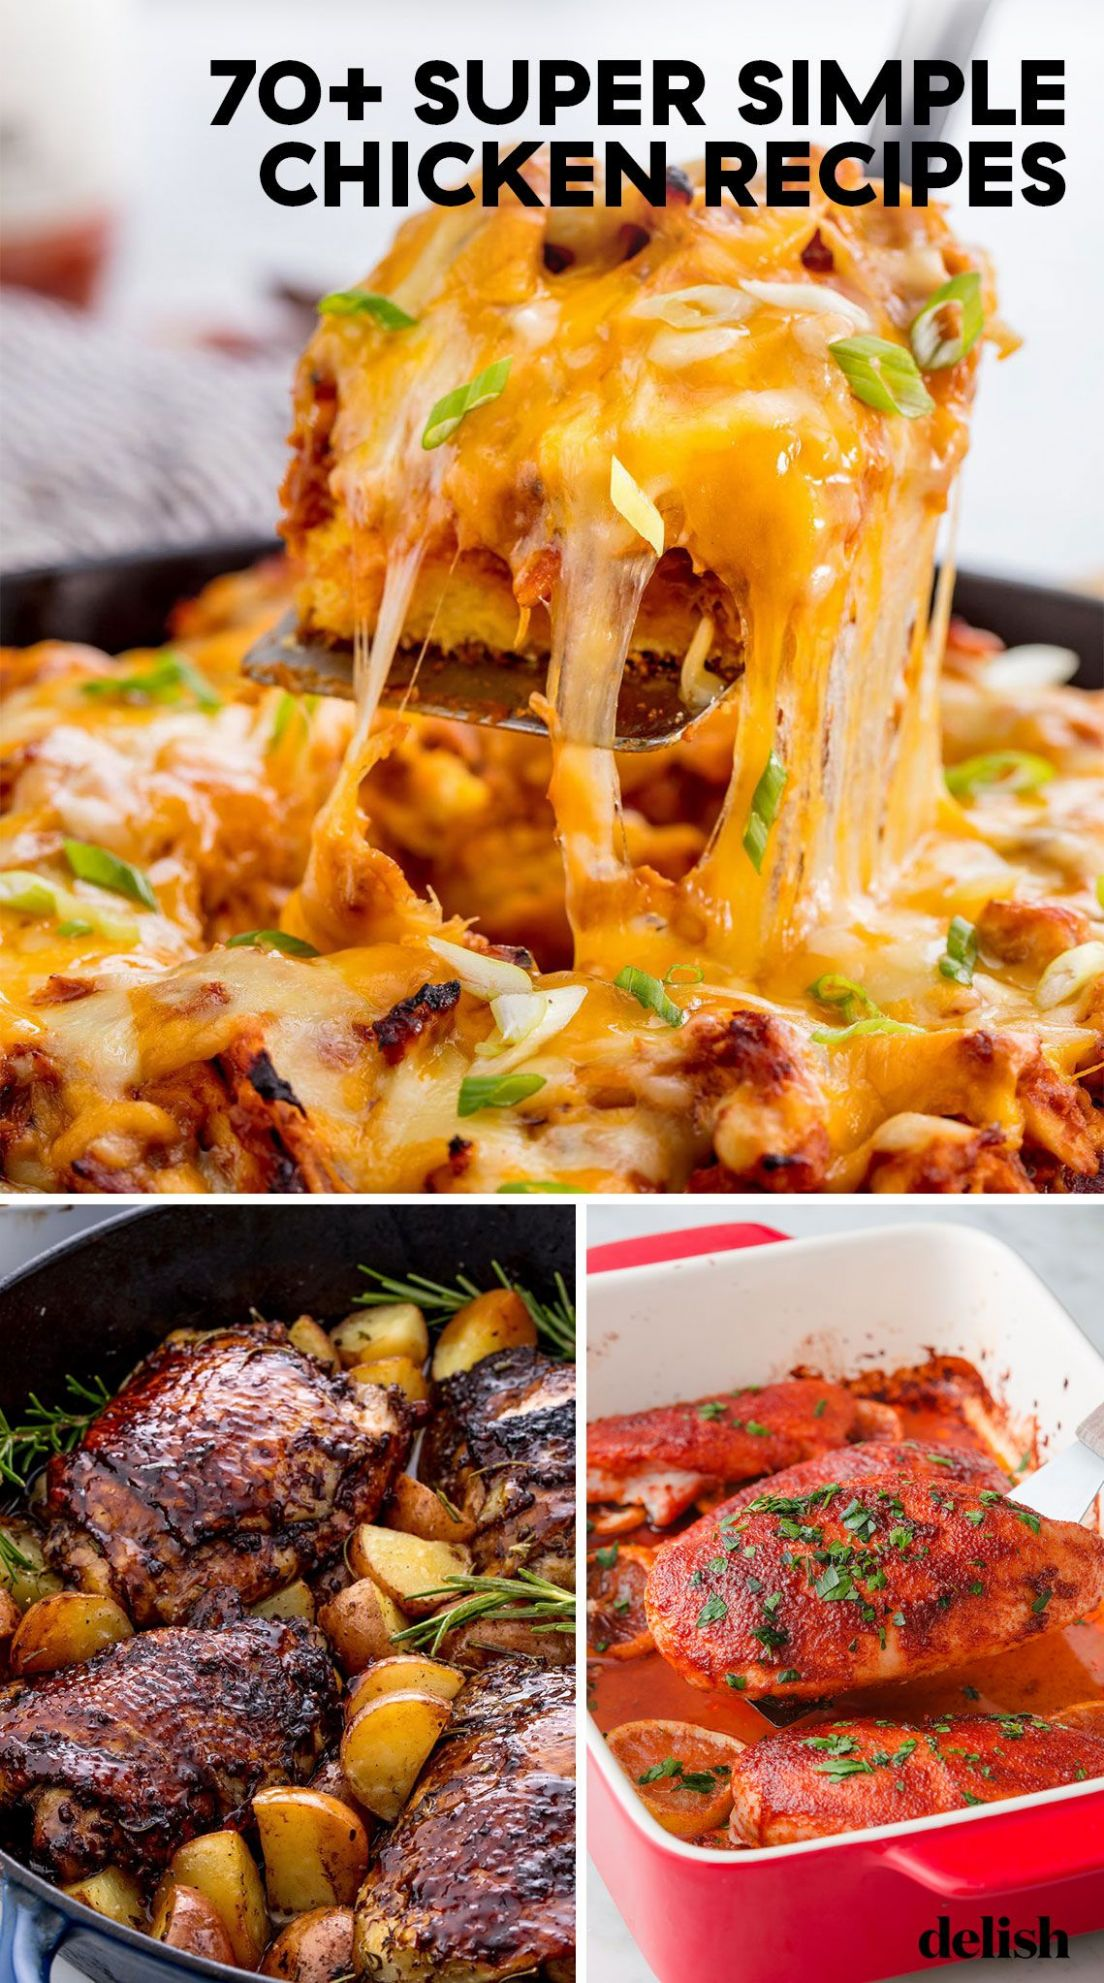 12+ Easy Chicken Dinner Recipes - Simple Ideas for Chicken Dishes - Food Recipes Chicken